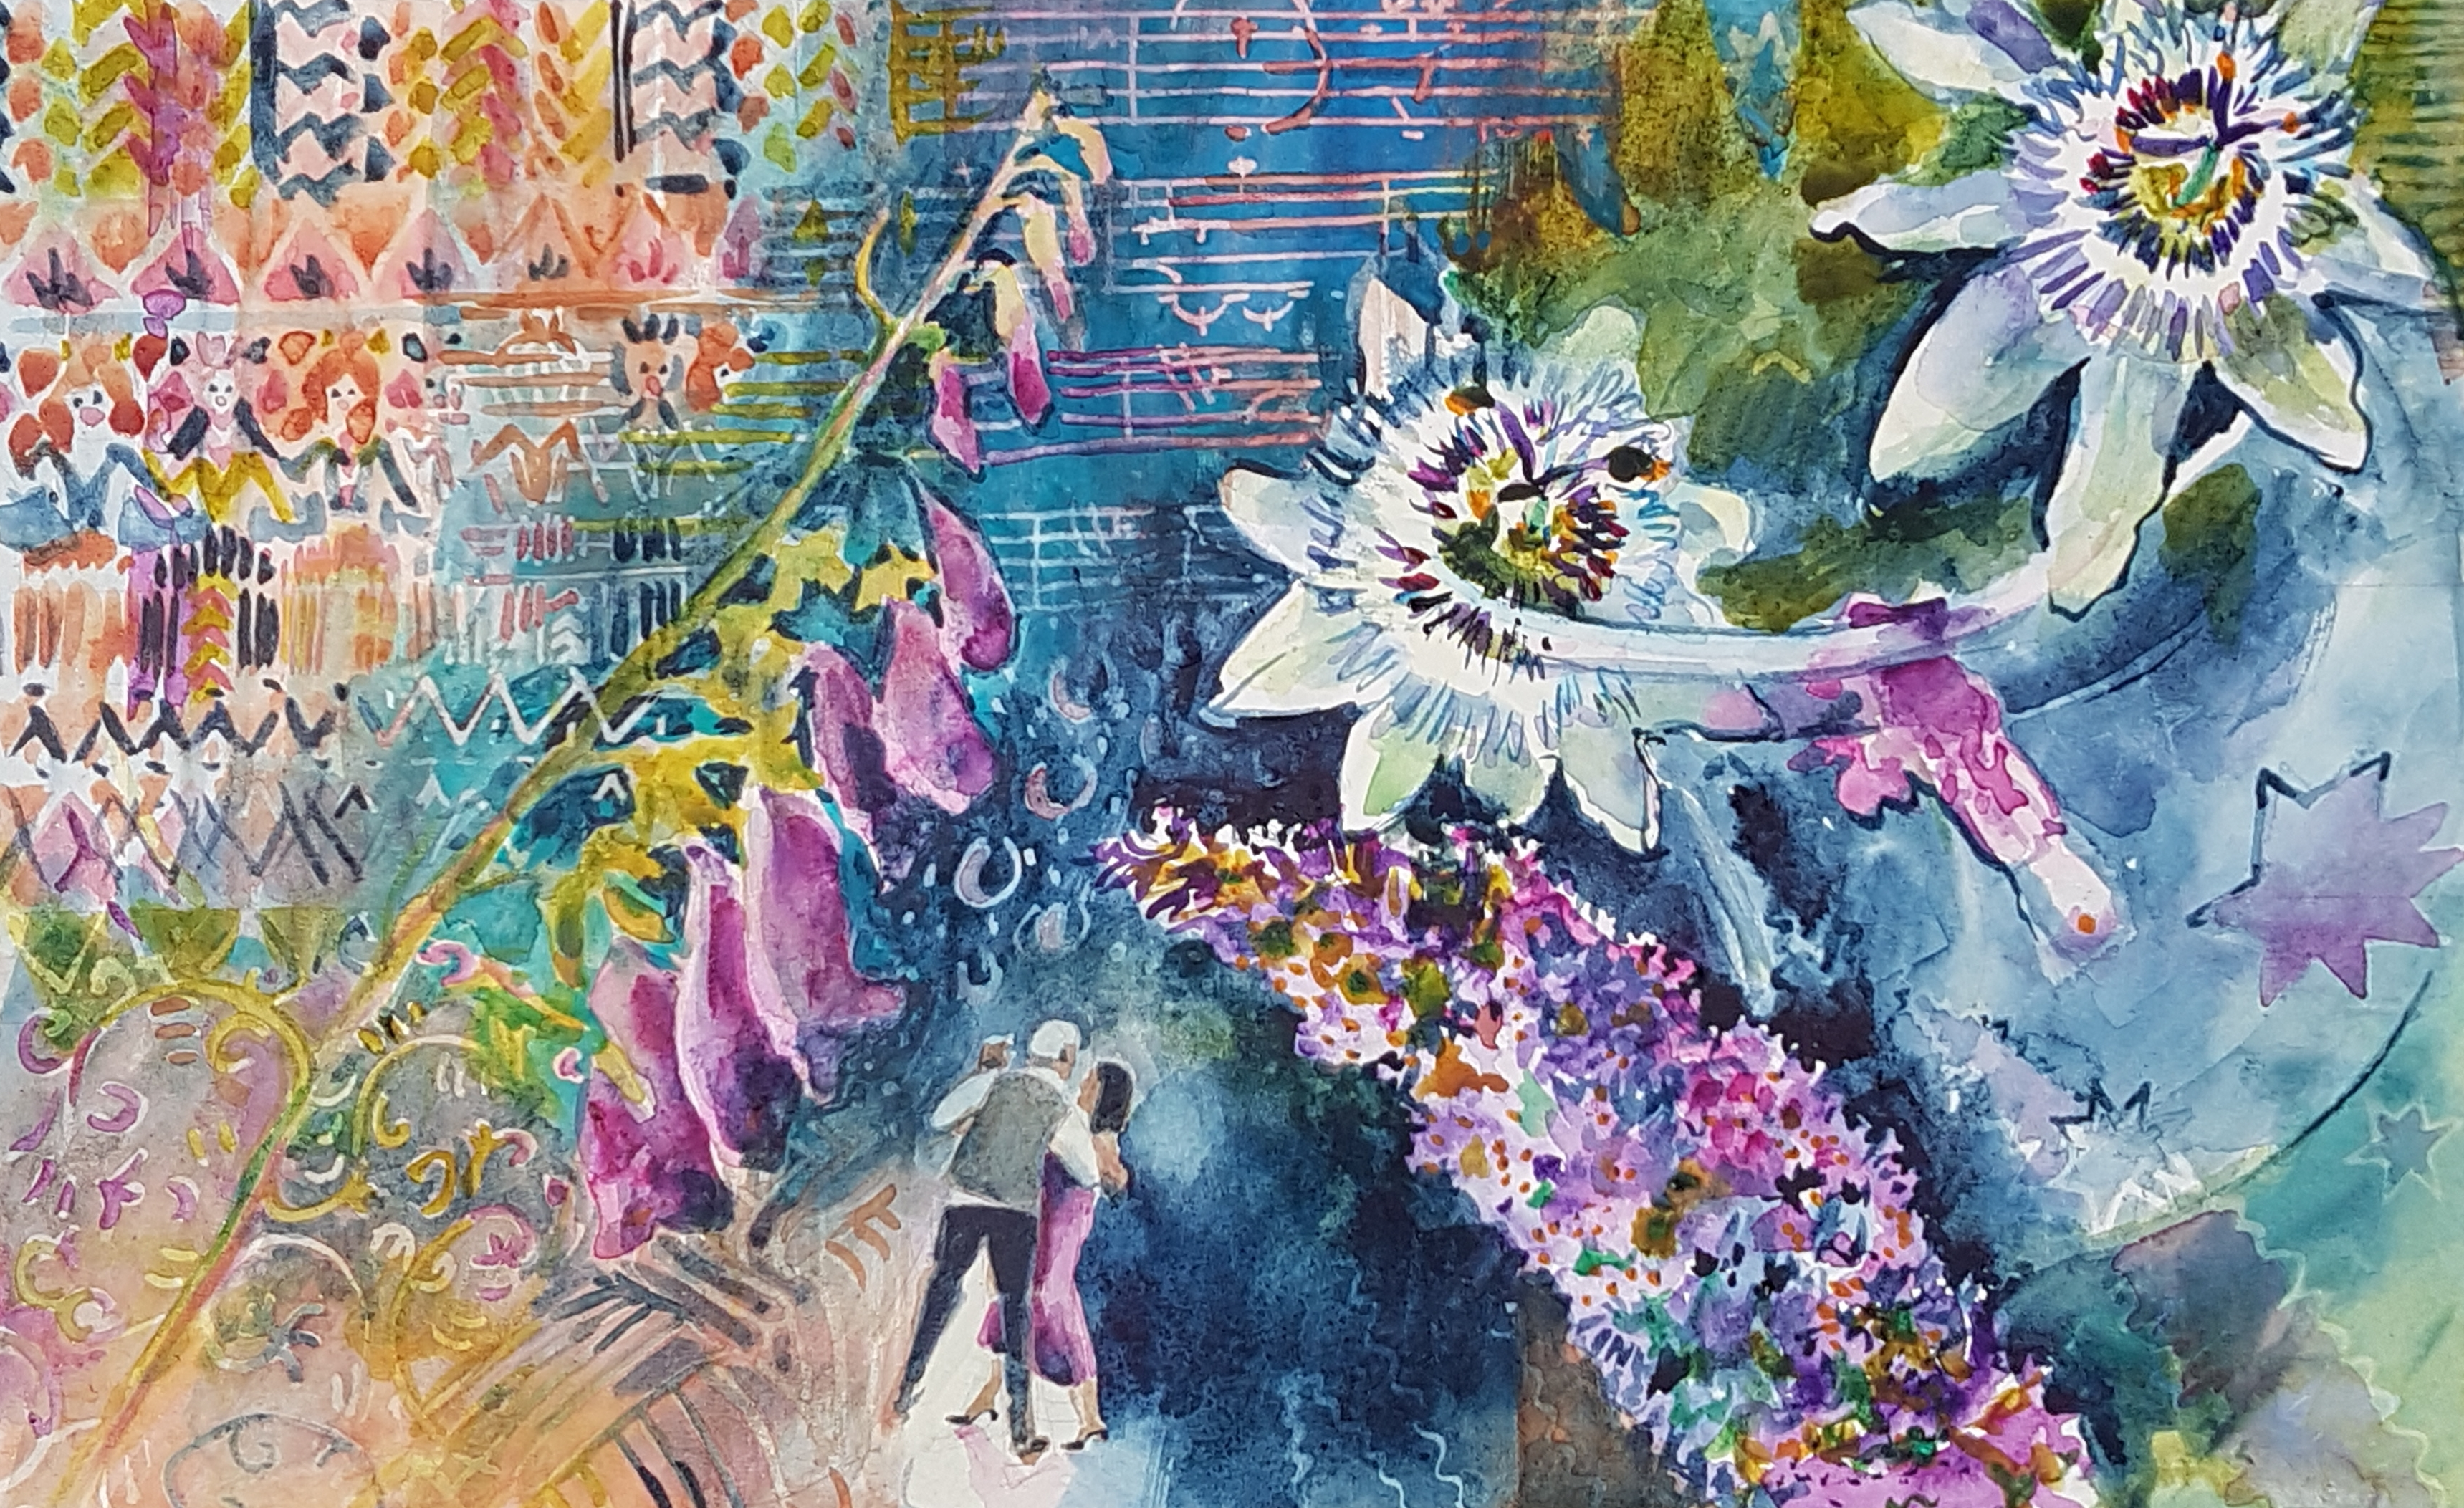 Watercolour painting with dancing couple and flowers